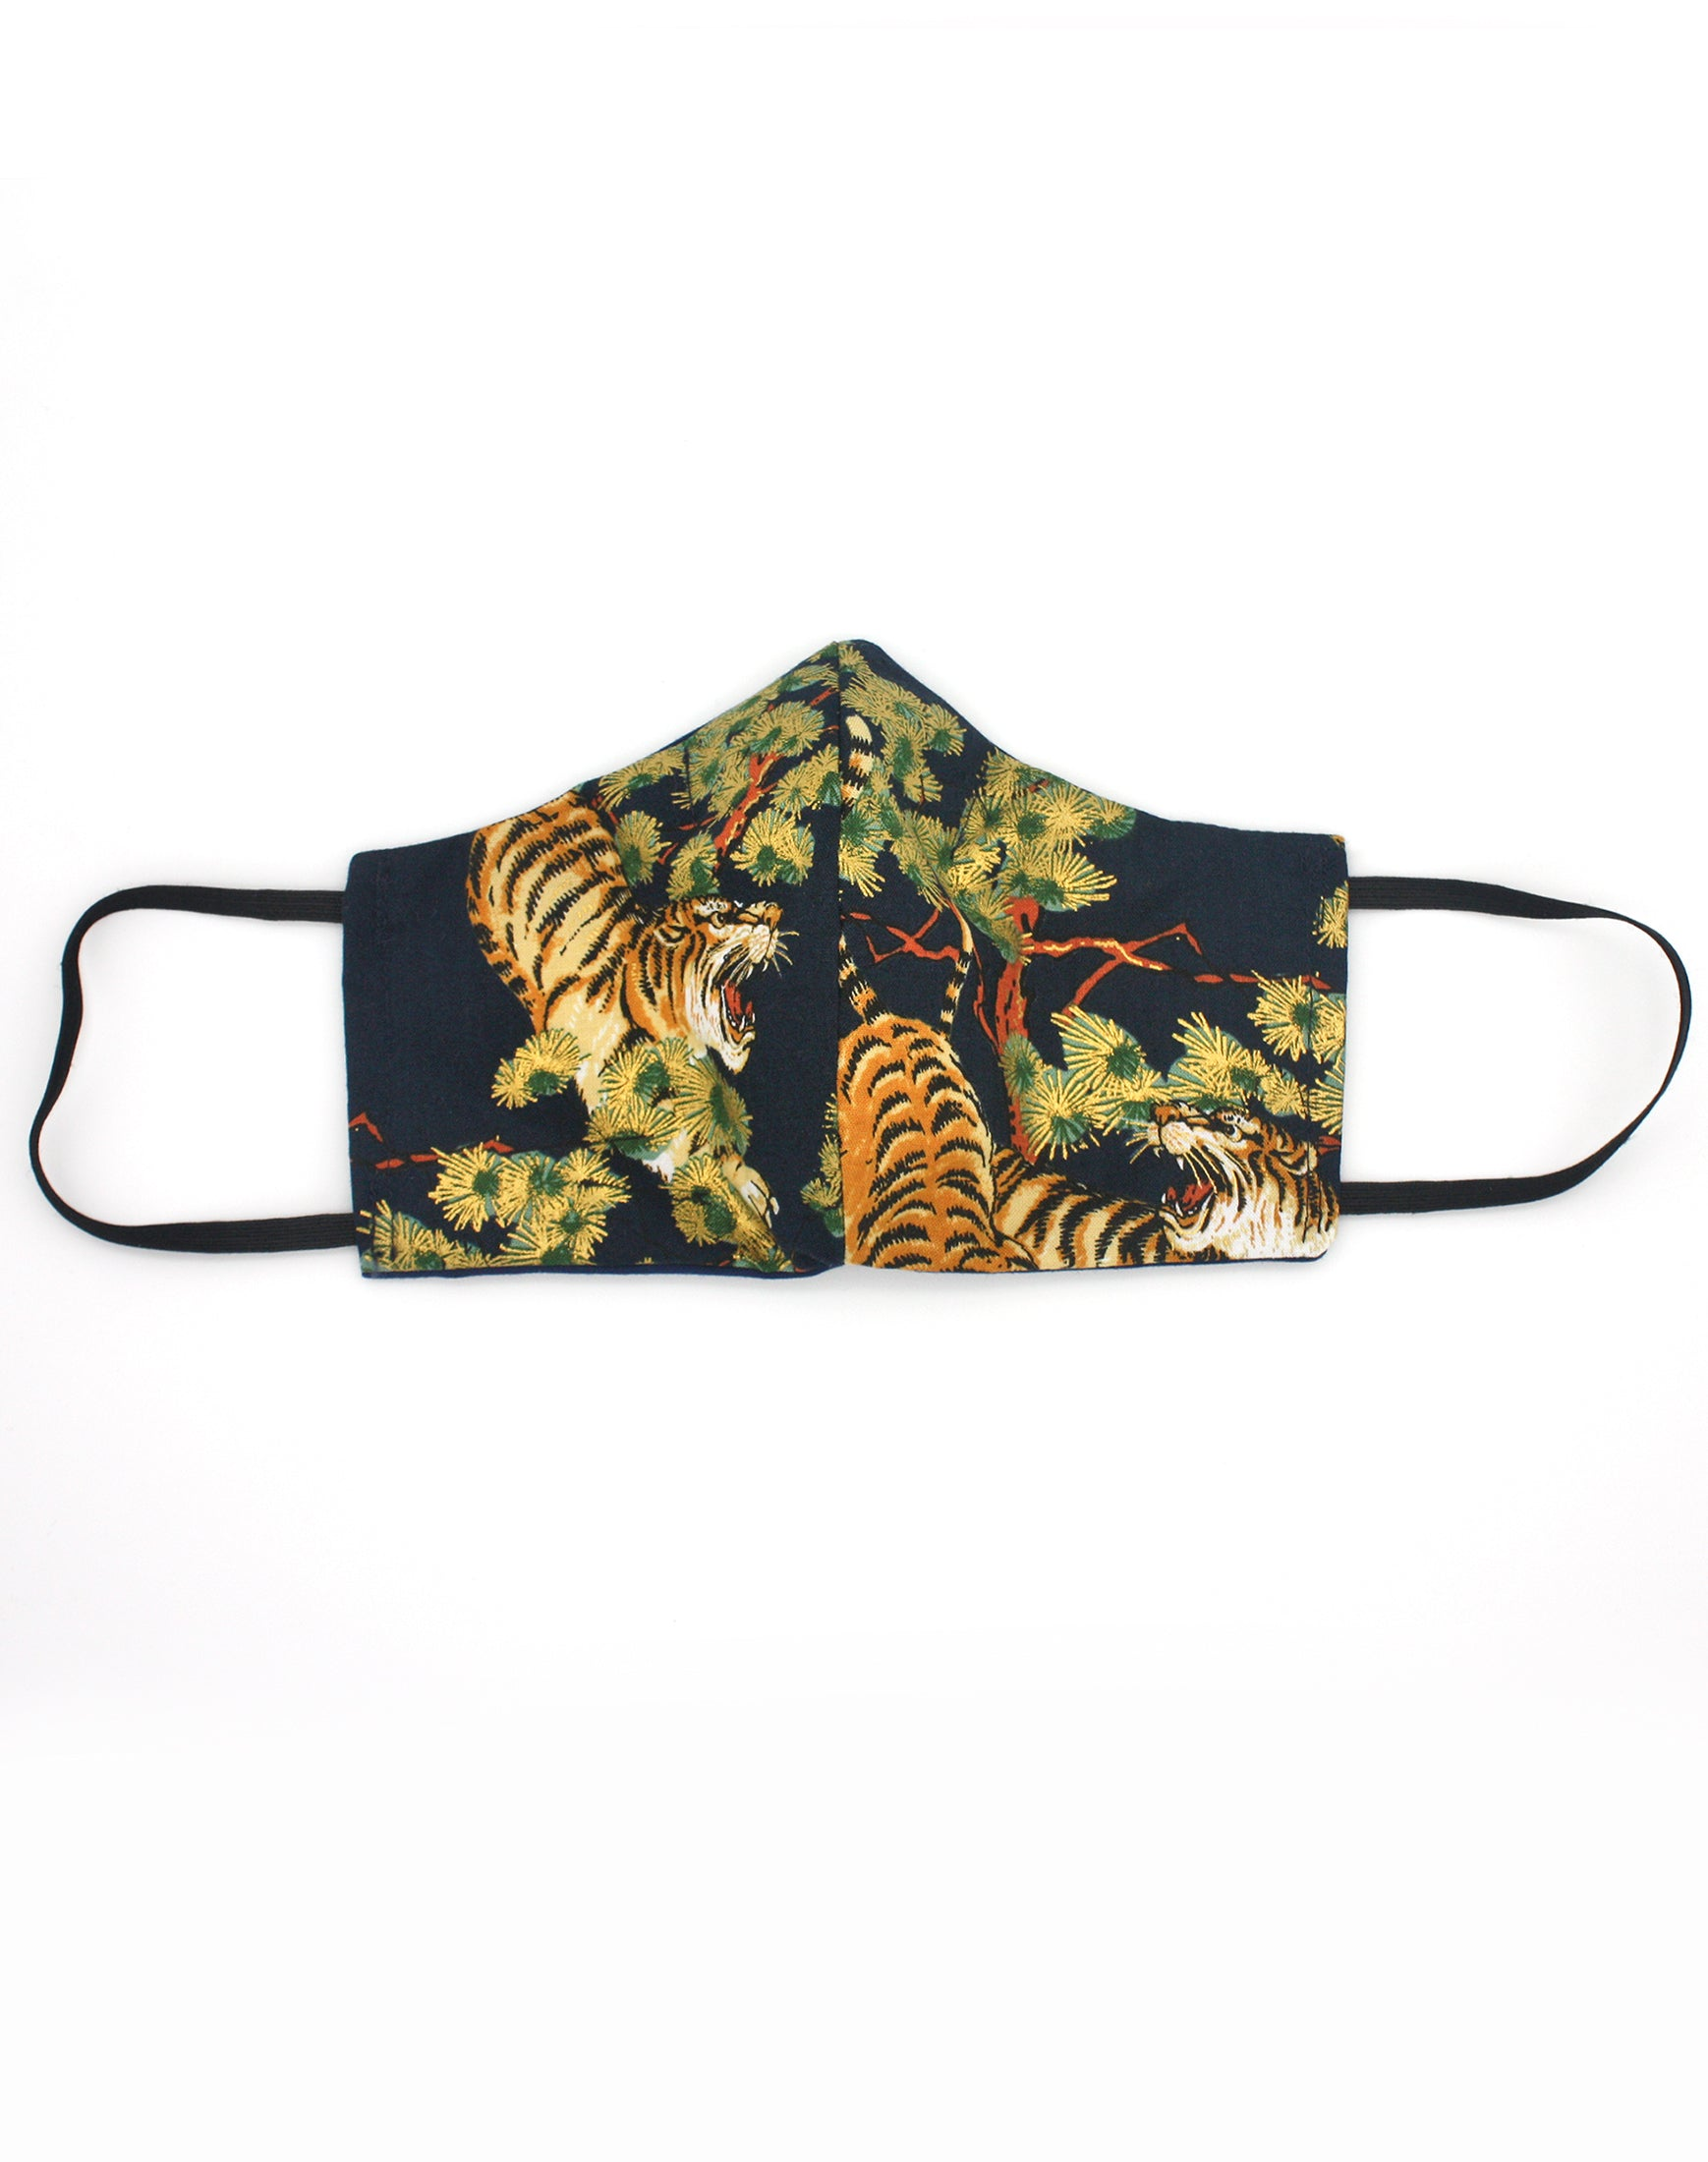 Luxe Japanese Tiger Pattern Cloth Fabric Mask